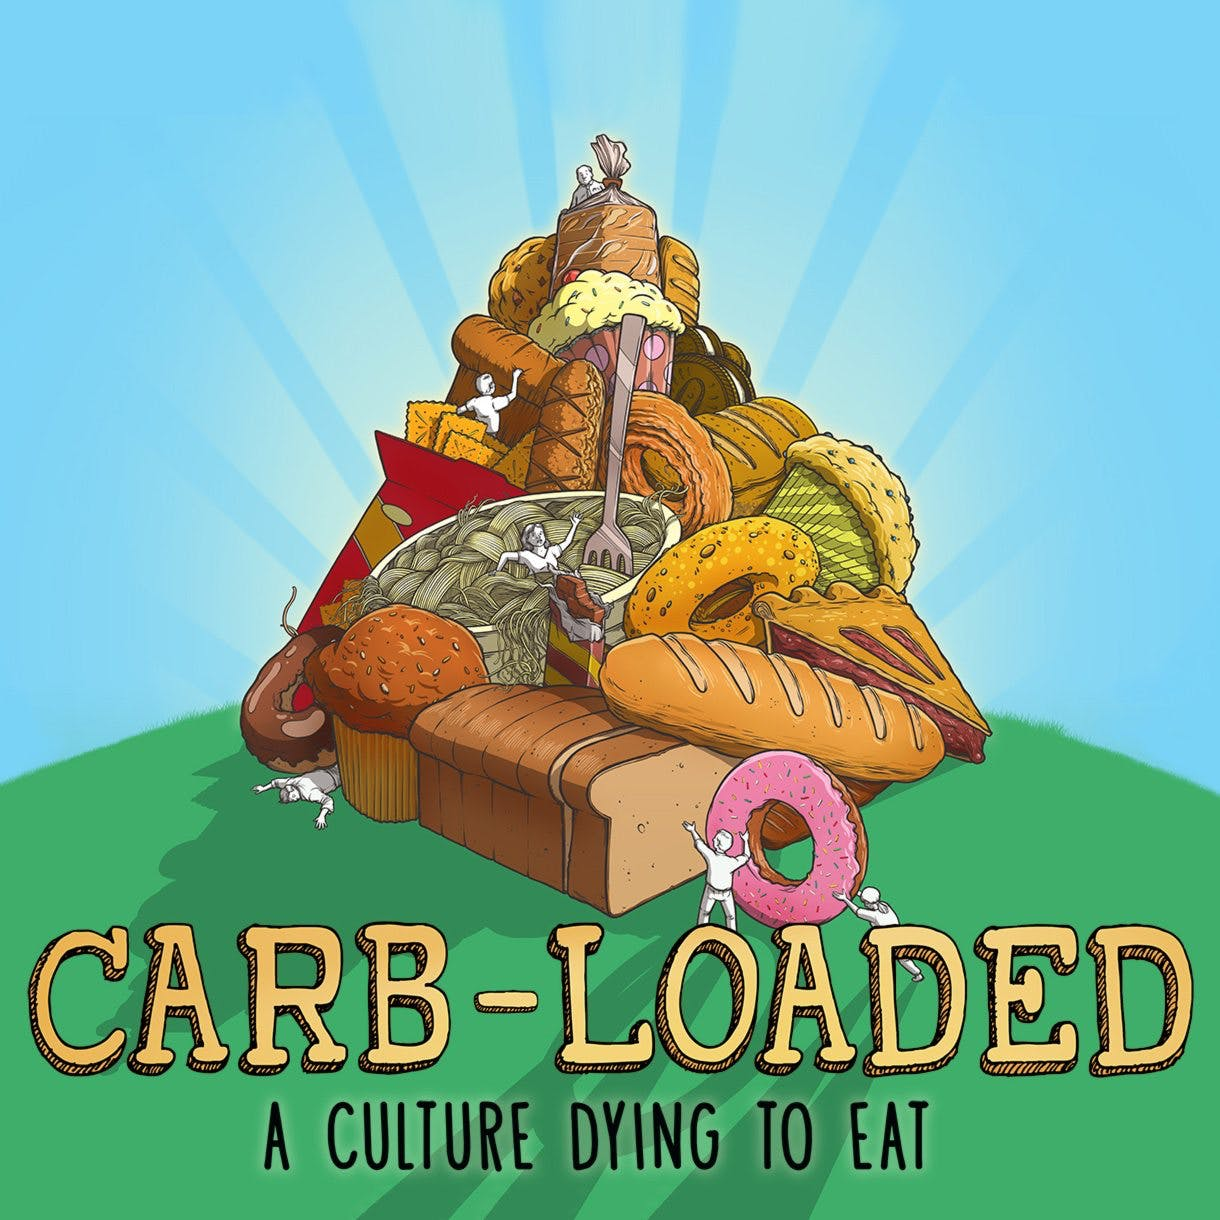 Watch the Best Low-Carb Movie